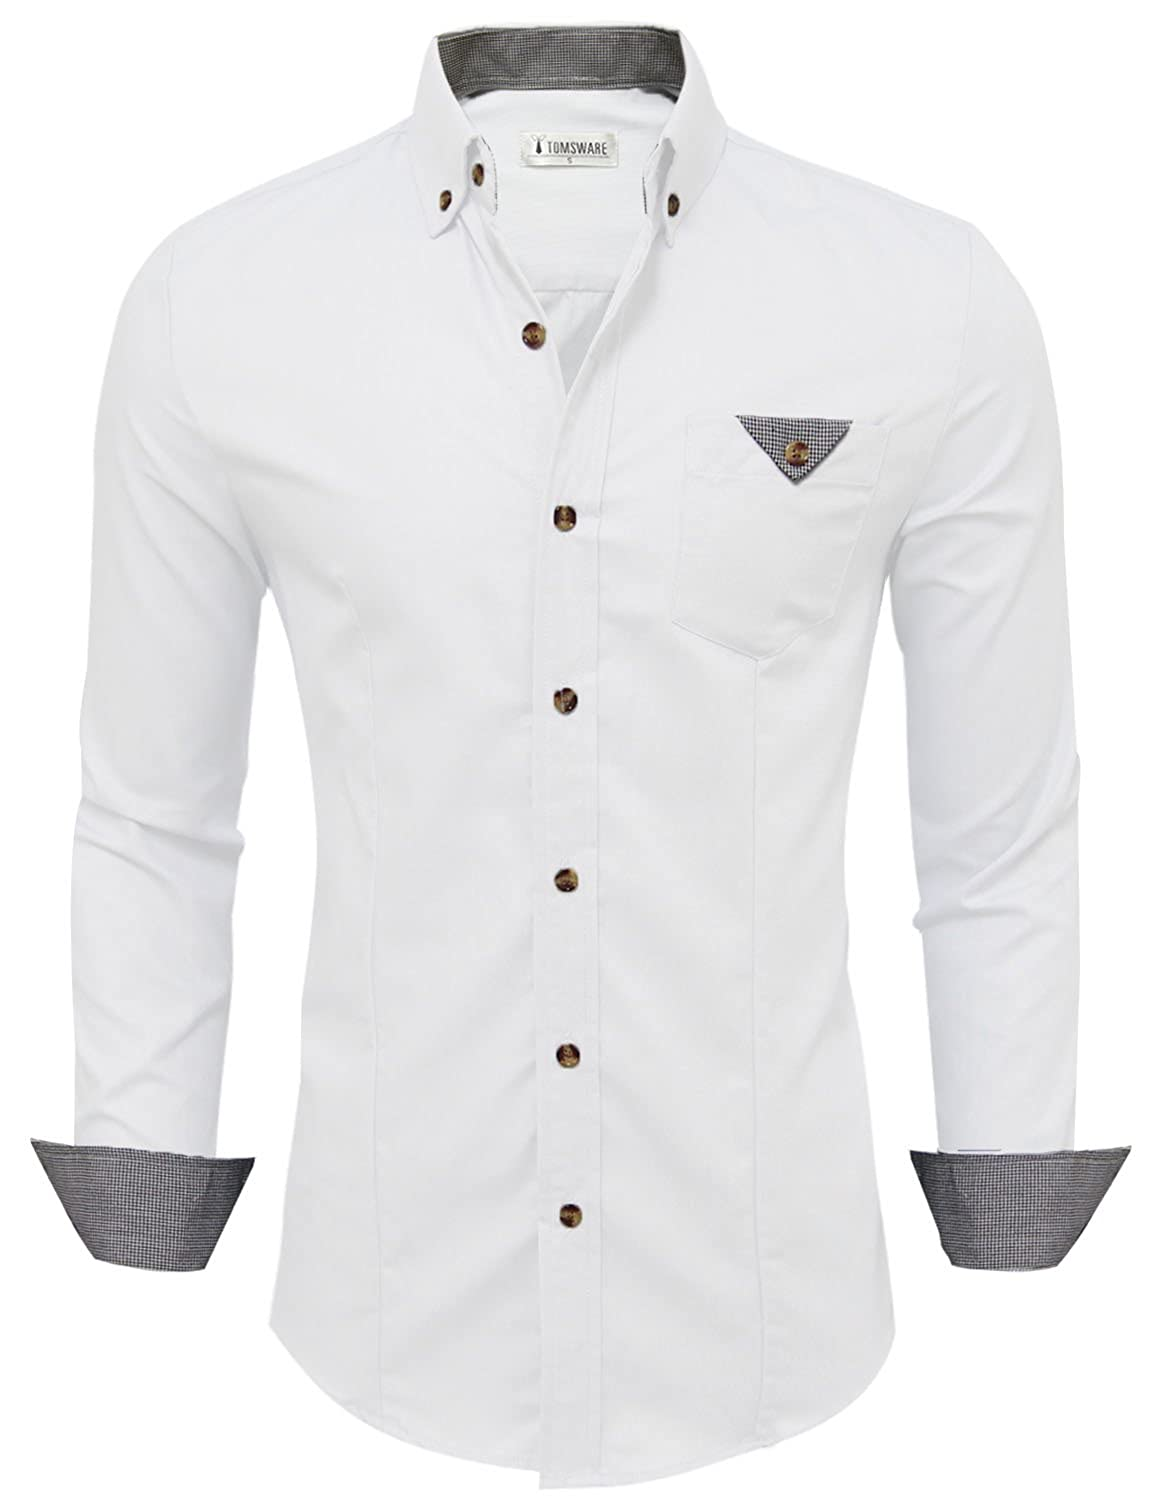 9d2c78529b15 Top 10 wholesale Mens Work Shirts Uk - Chinabrands.com